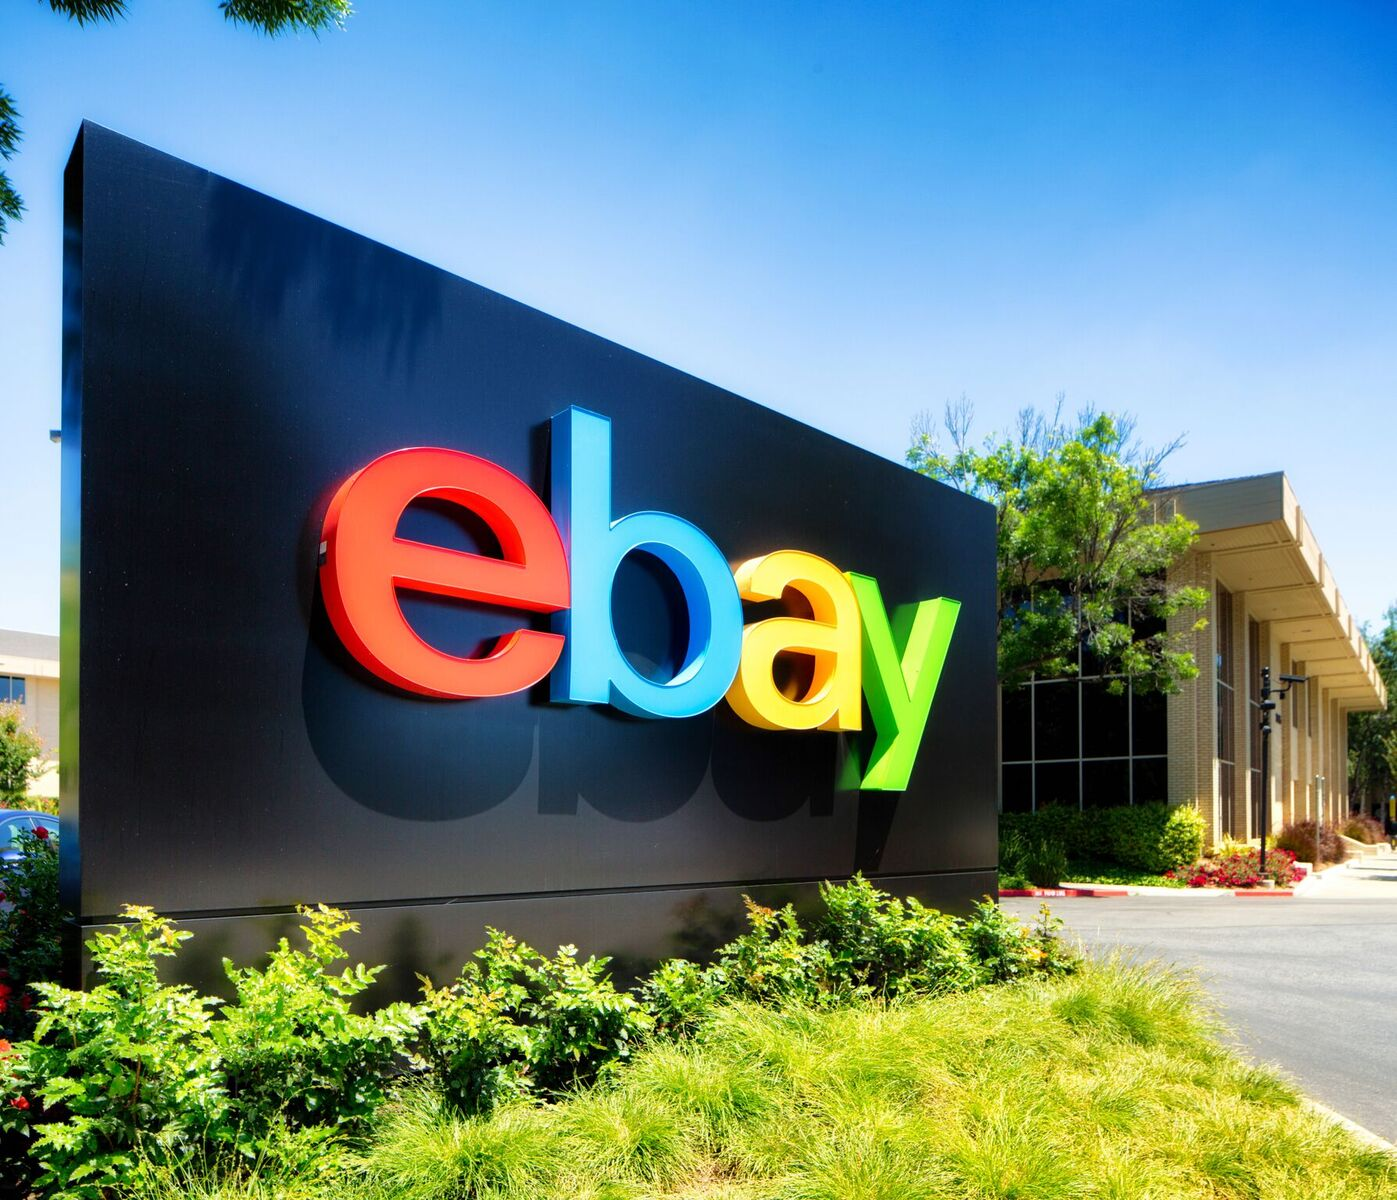 Ebay head quarters in San Jose California